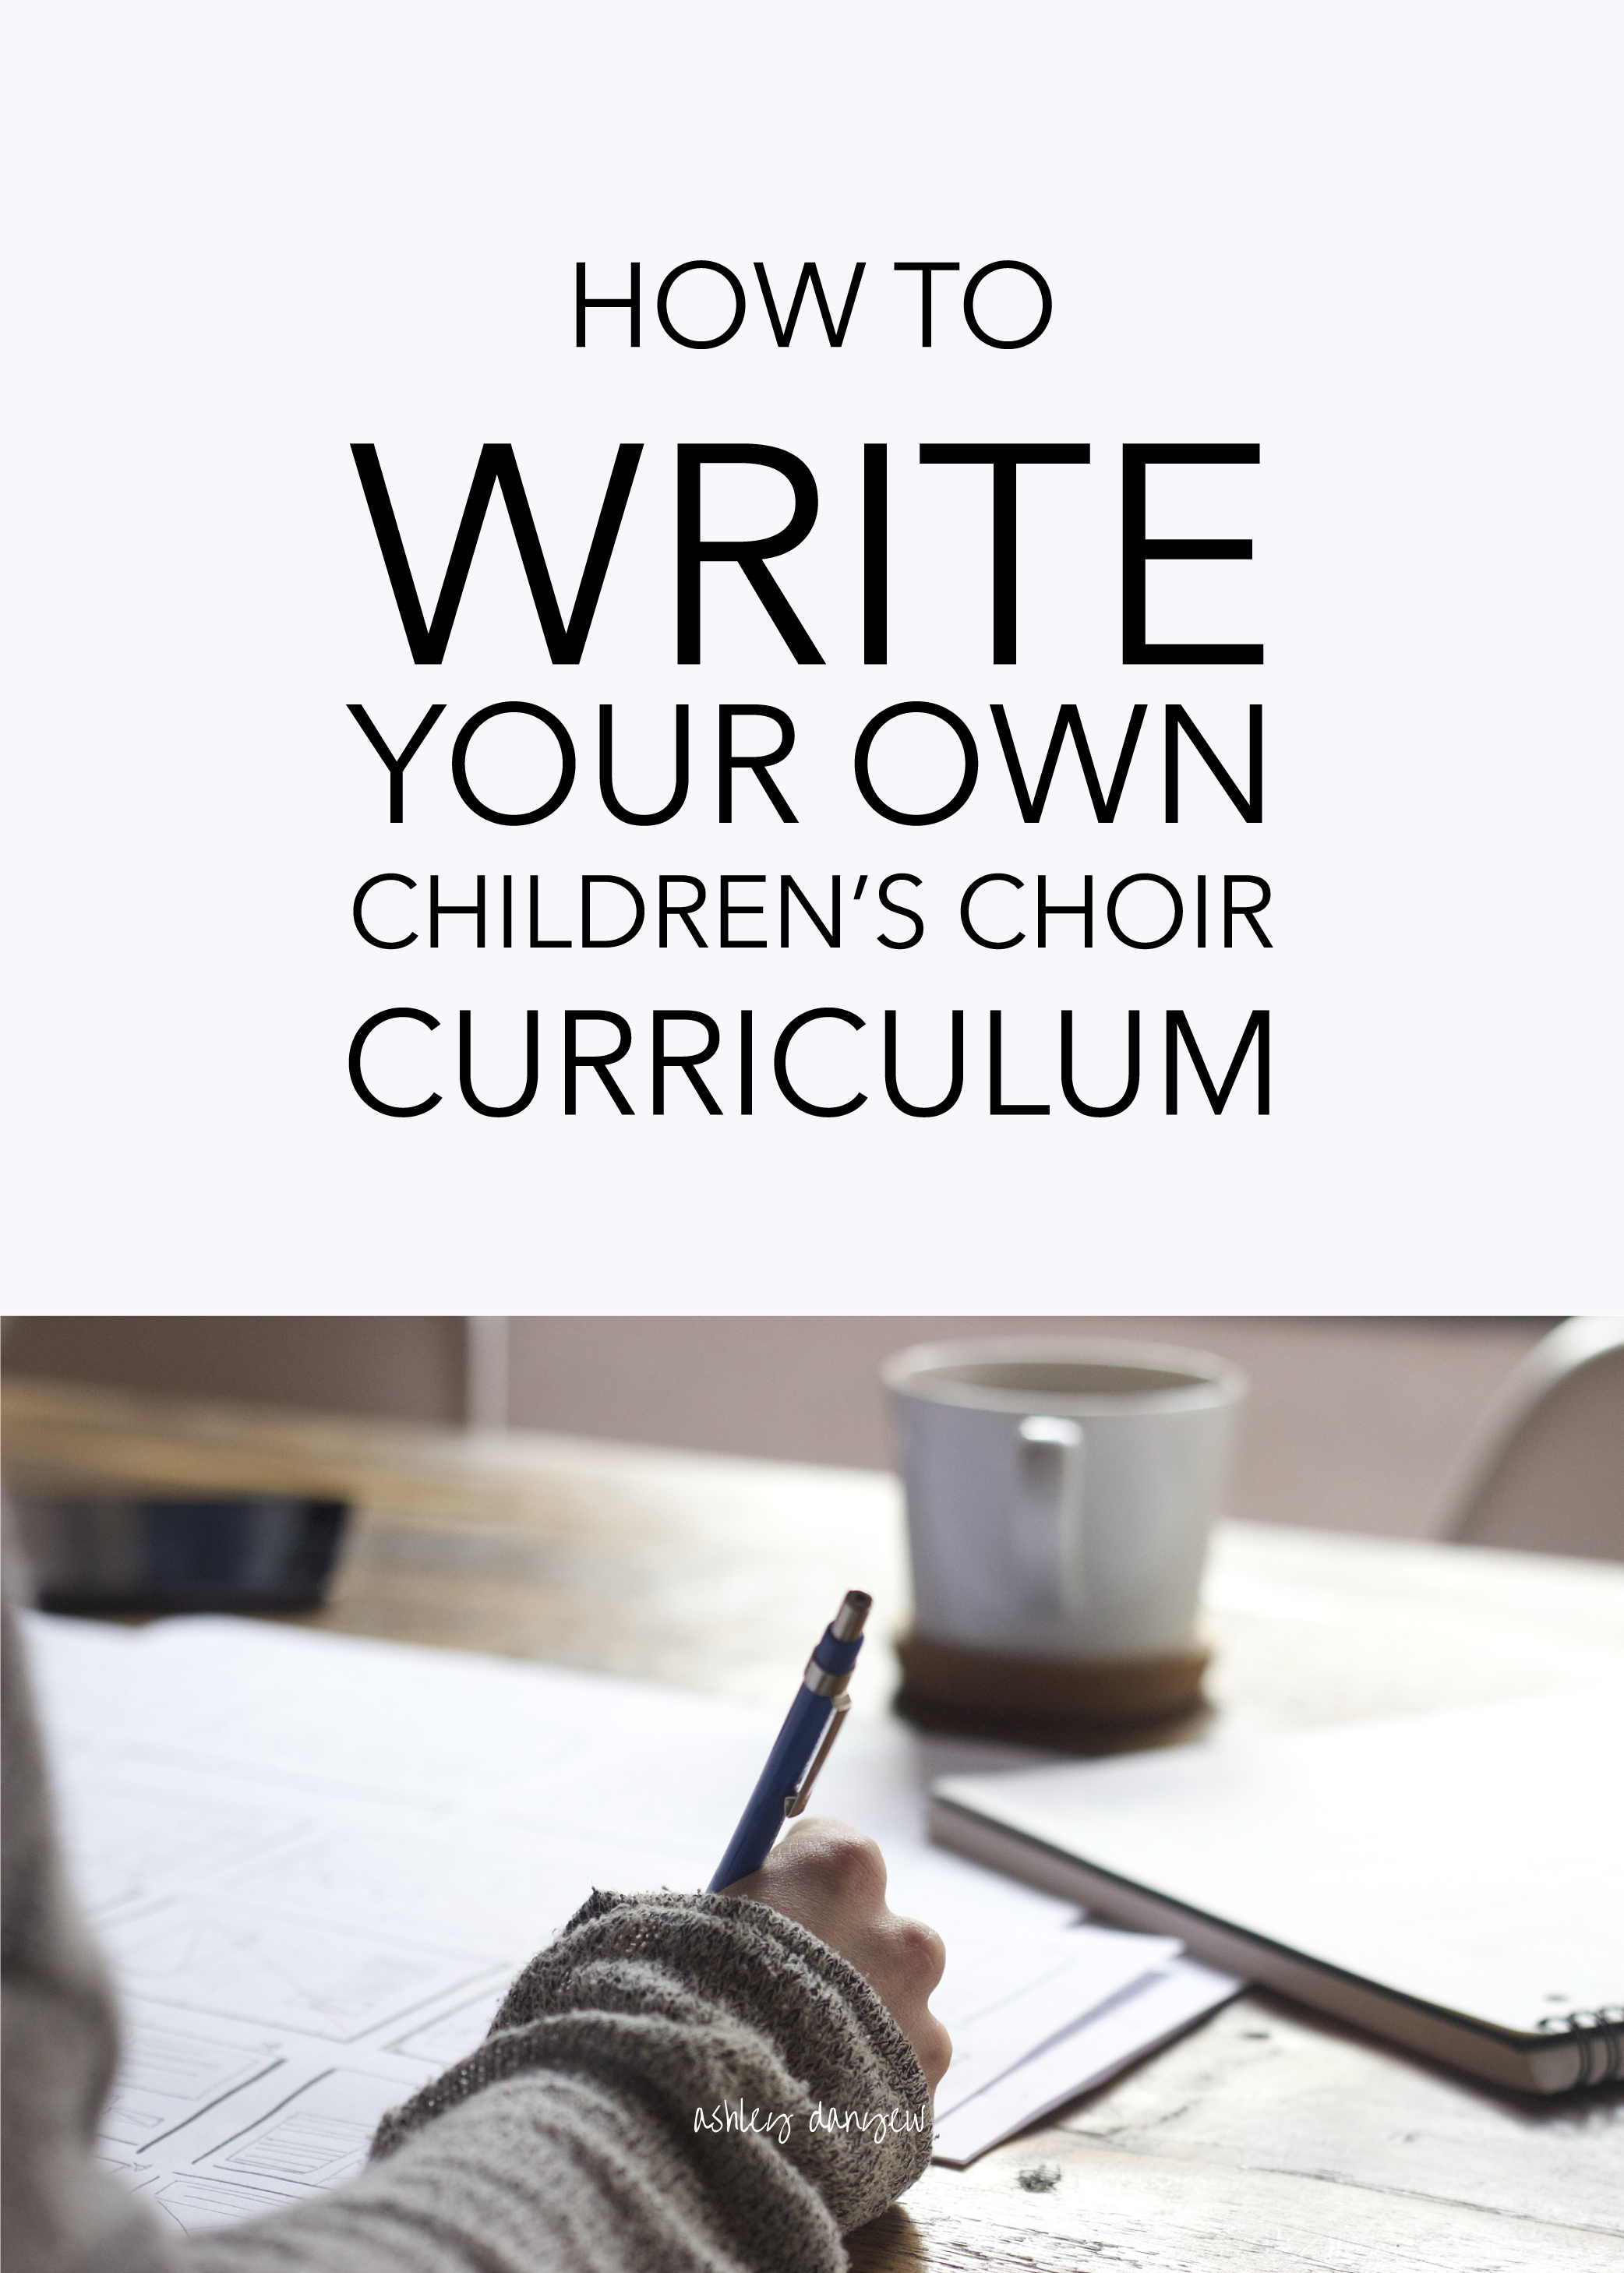 Copy of How to Write Your Own Children's Choir Curriculum